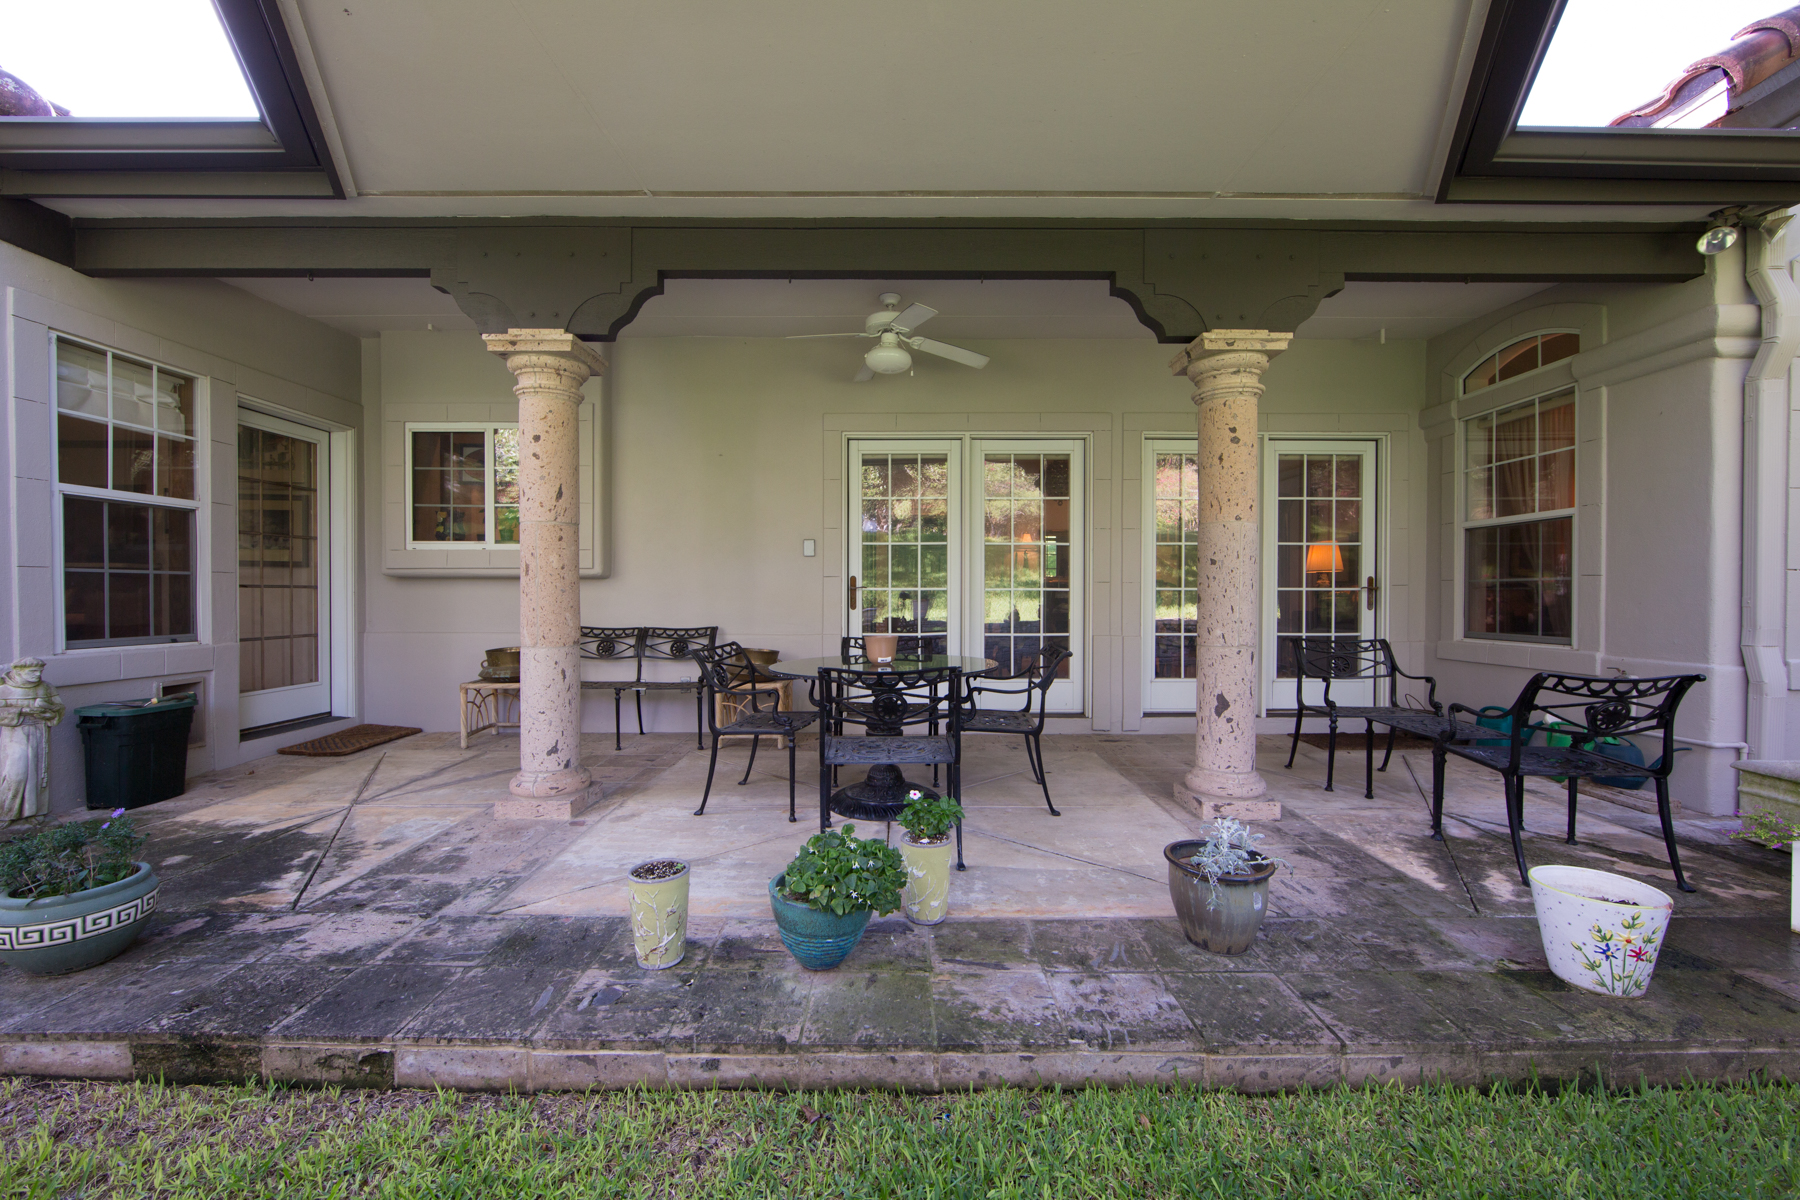 Additional photo for property listing at Gorgeous Cottage in The Dominion 2 Waterford Glen San Antonio, Texas 78257 Estados Unidos